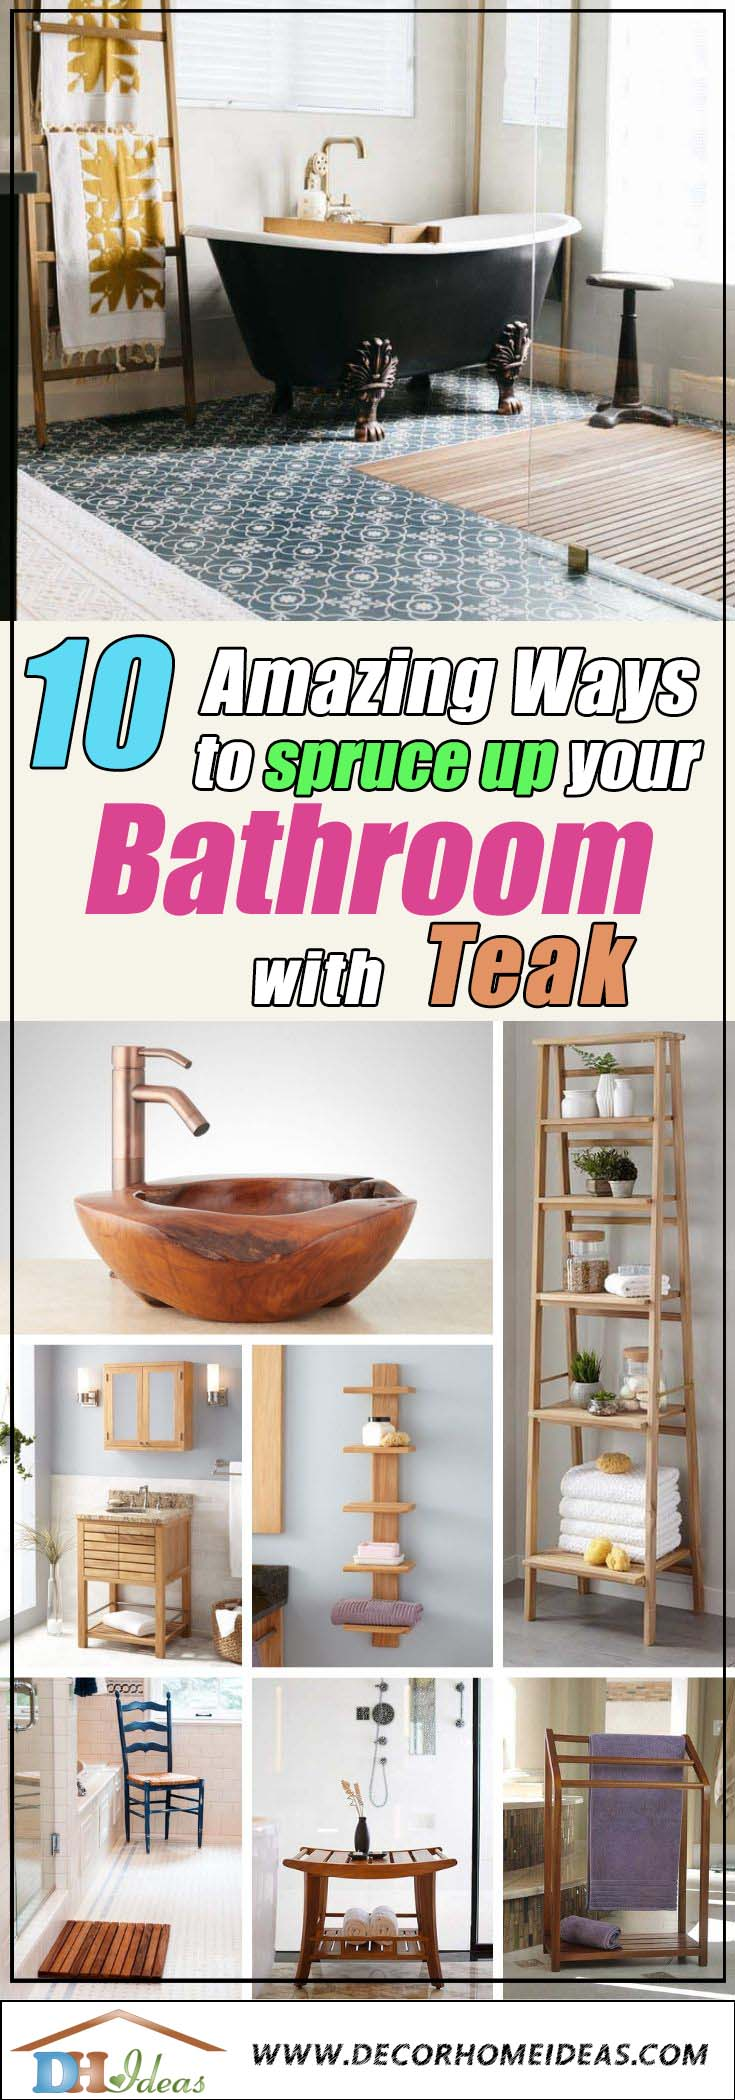 Ways To Spruce Your Teak Bathroom #bathroom #teak #decorhomeideas